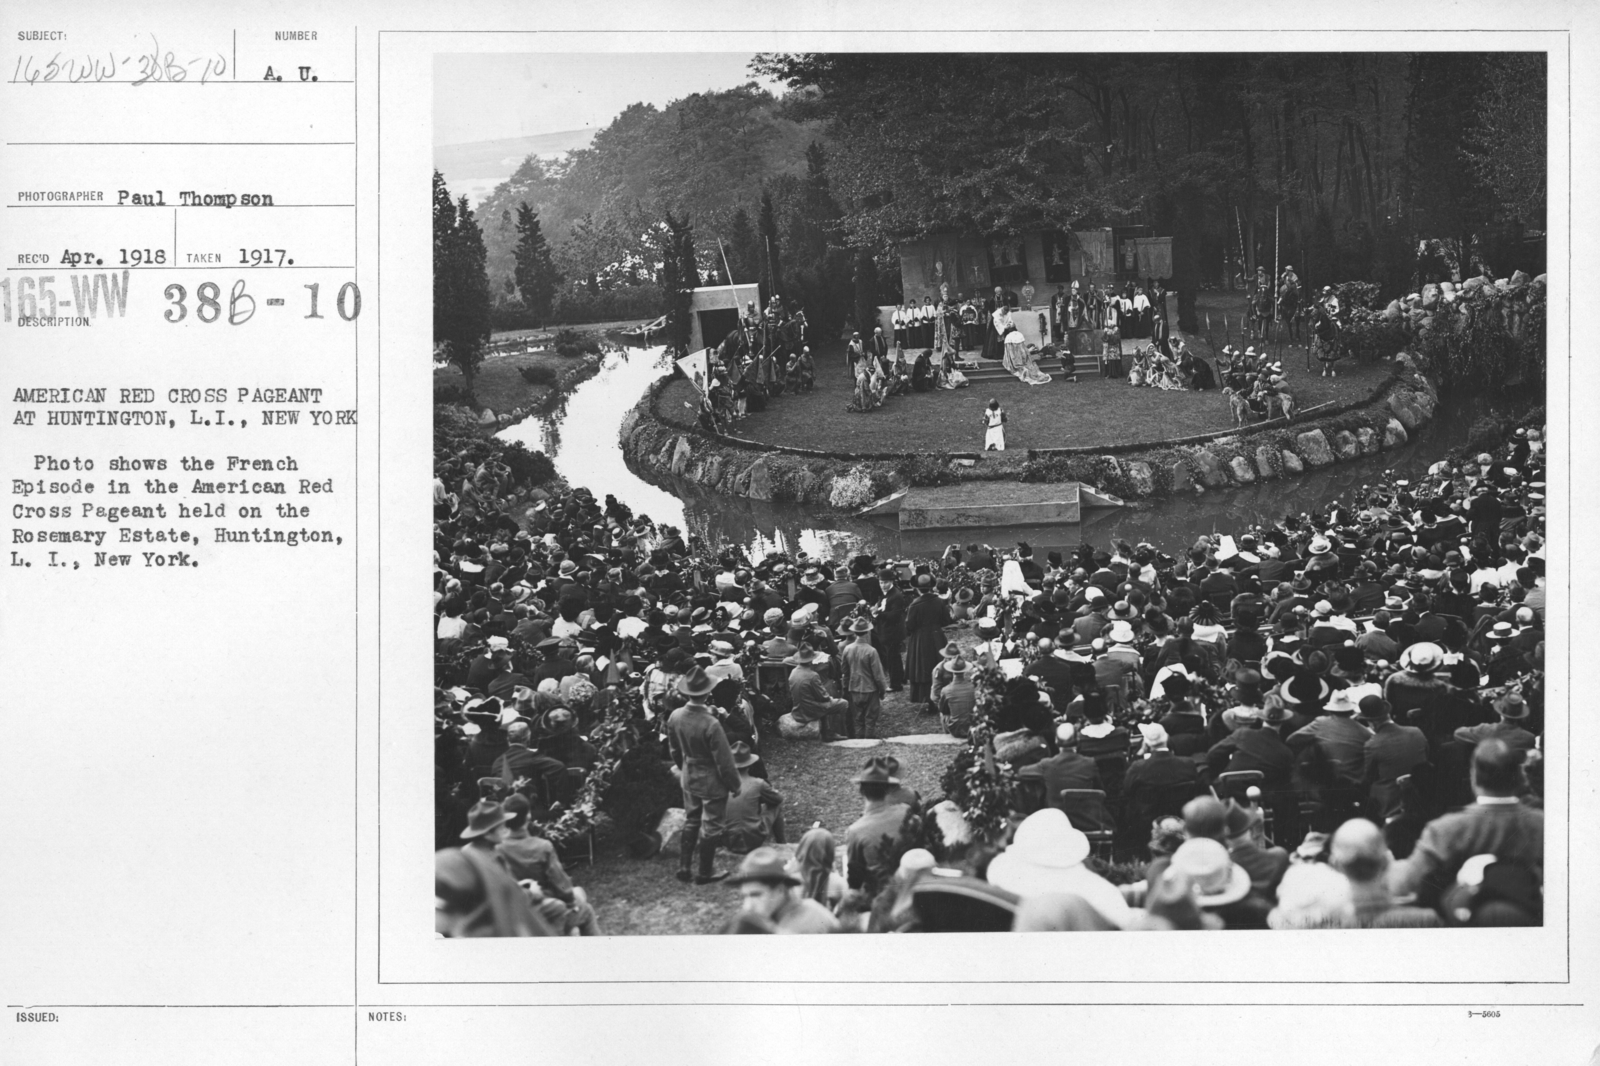 American Red Cross - Soliciting Funds - Entertainments - American Red Cross Pageant at Huntington, L.I., New York. Photo shows the French Episode in the American Red Cross Pageant held on the Rosemary Estate, Huntington, L.I., New York